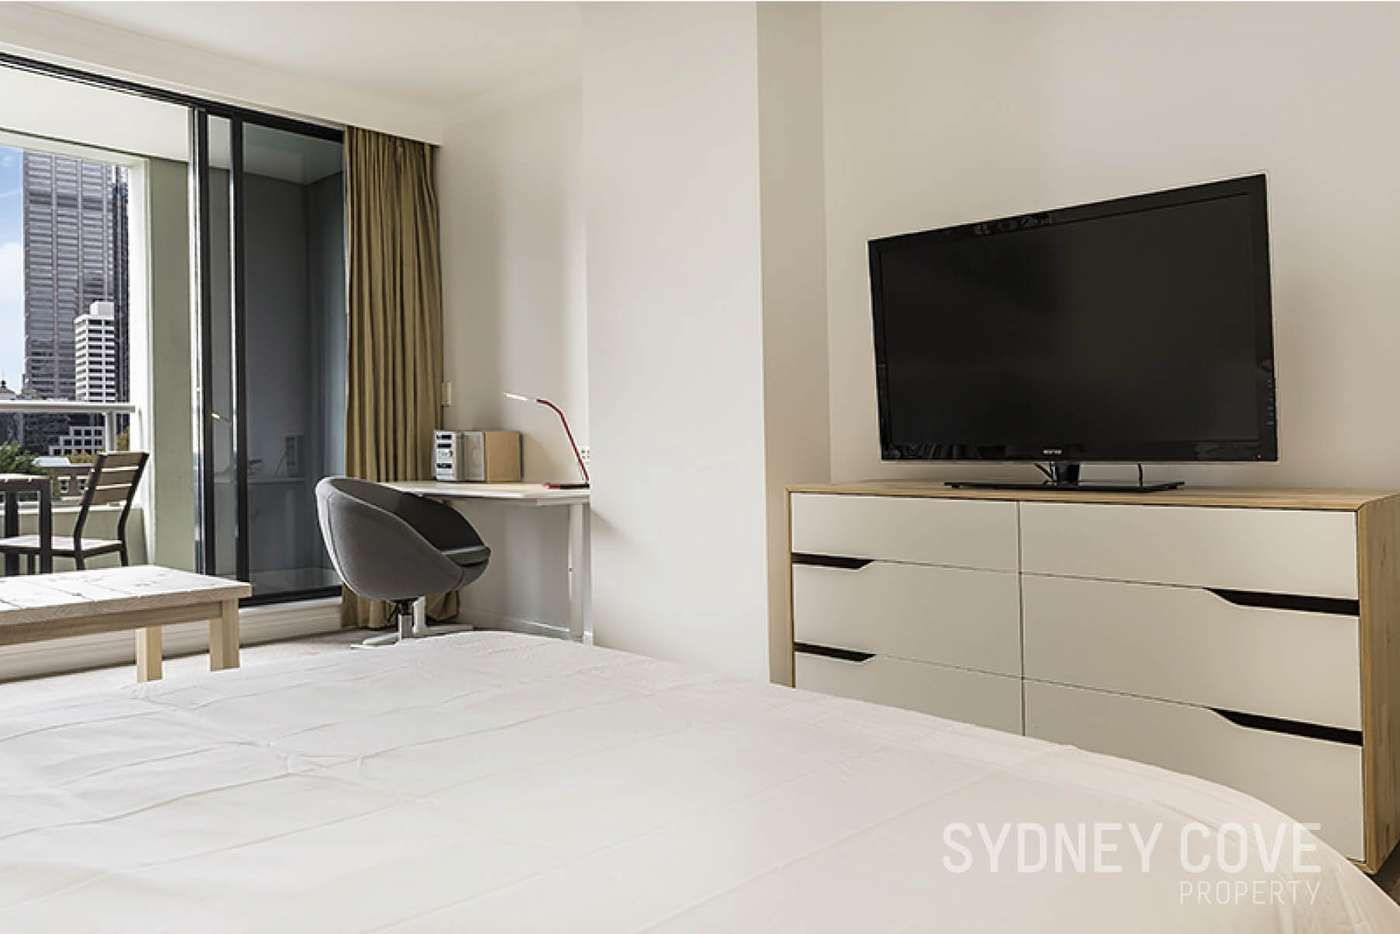 Sixth view of Homely apartment listing, 187 Kent St, Sydney NSW 2000